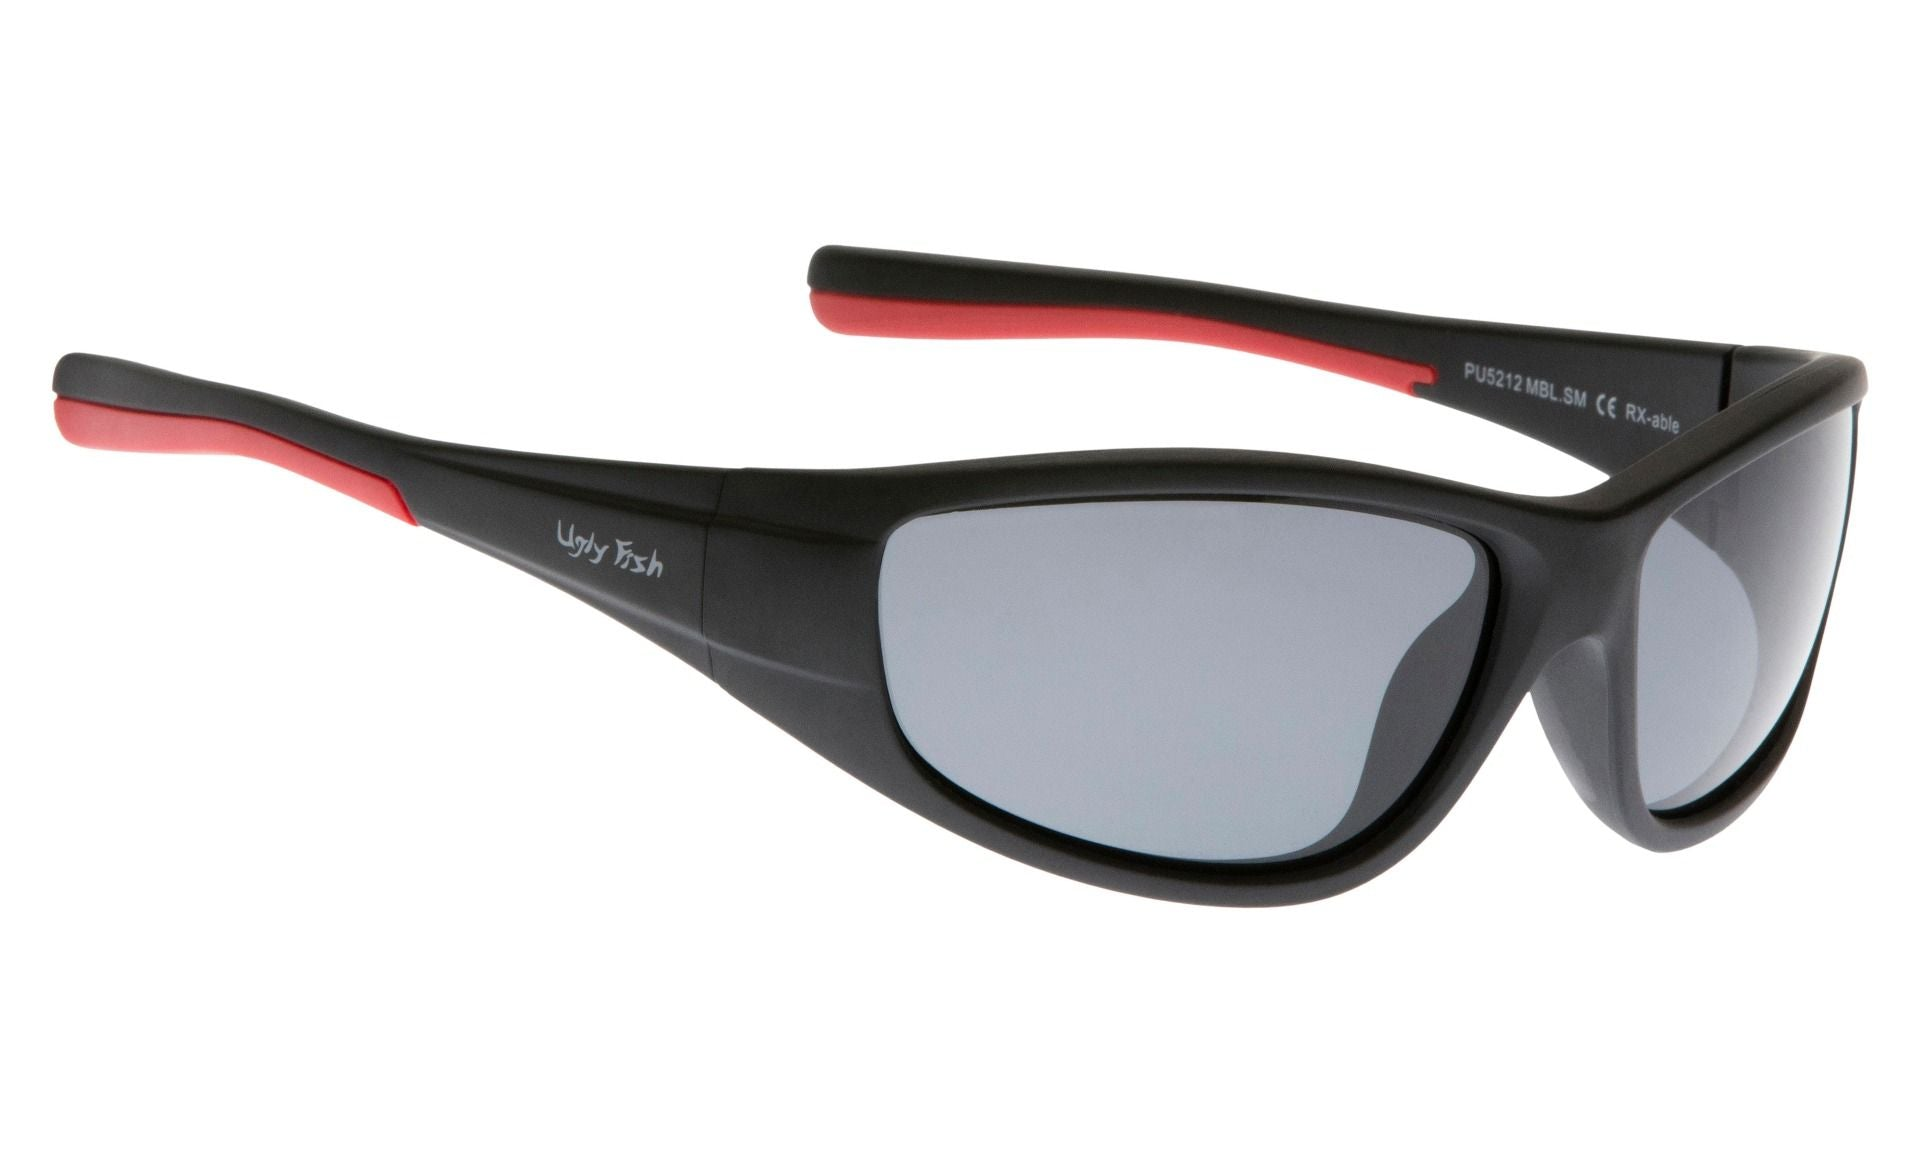 4dd7689f7cc6 unbreakable mens polarised sunglasses outdoor use  Ugly Fish PU5212 ...